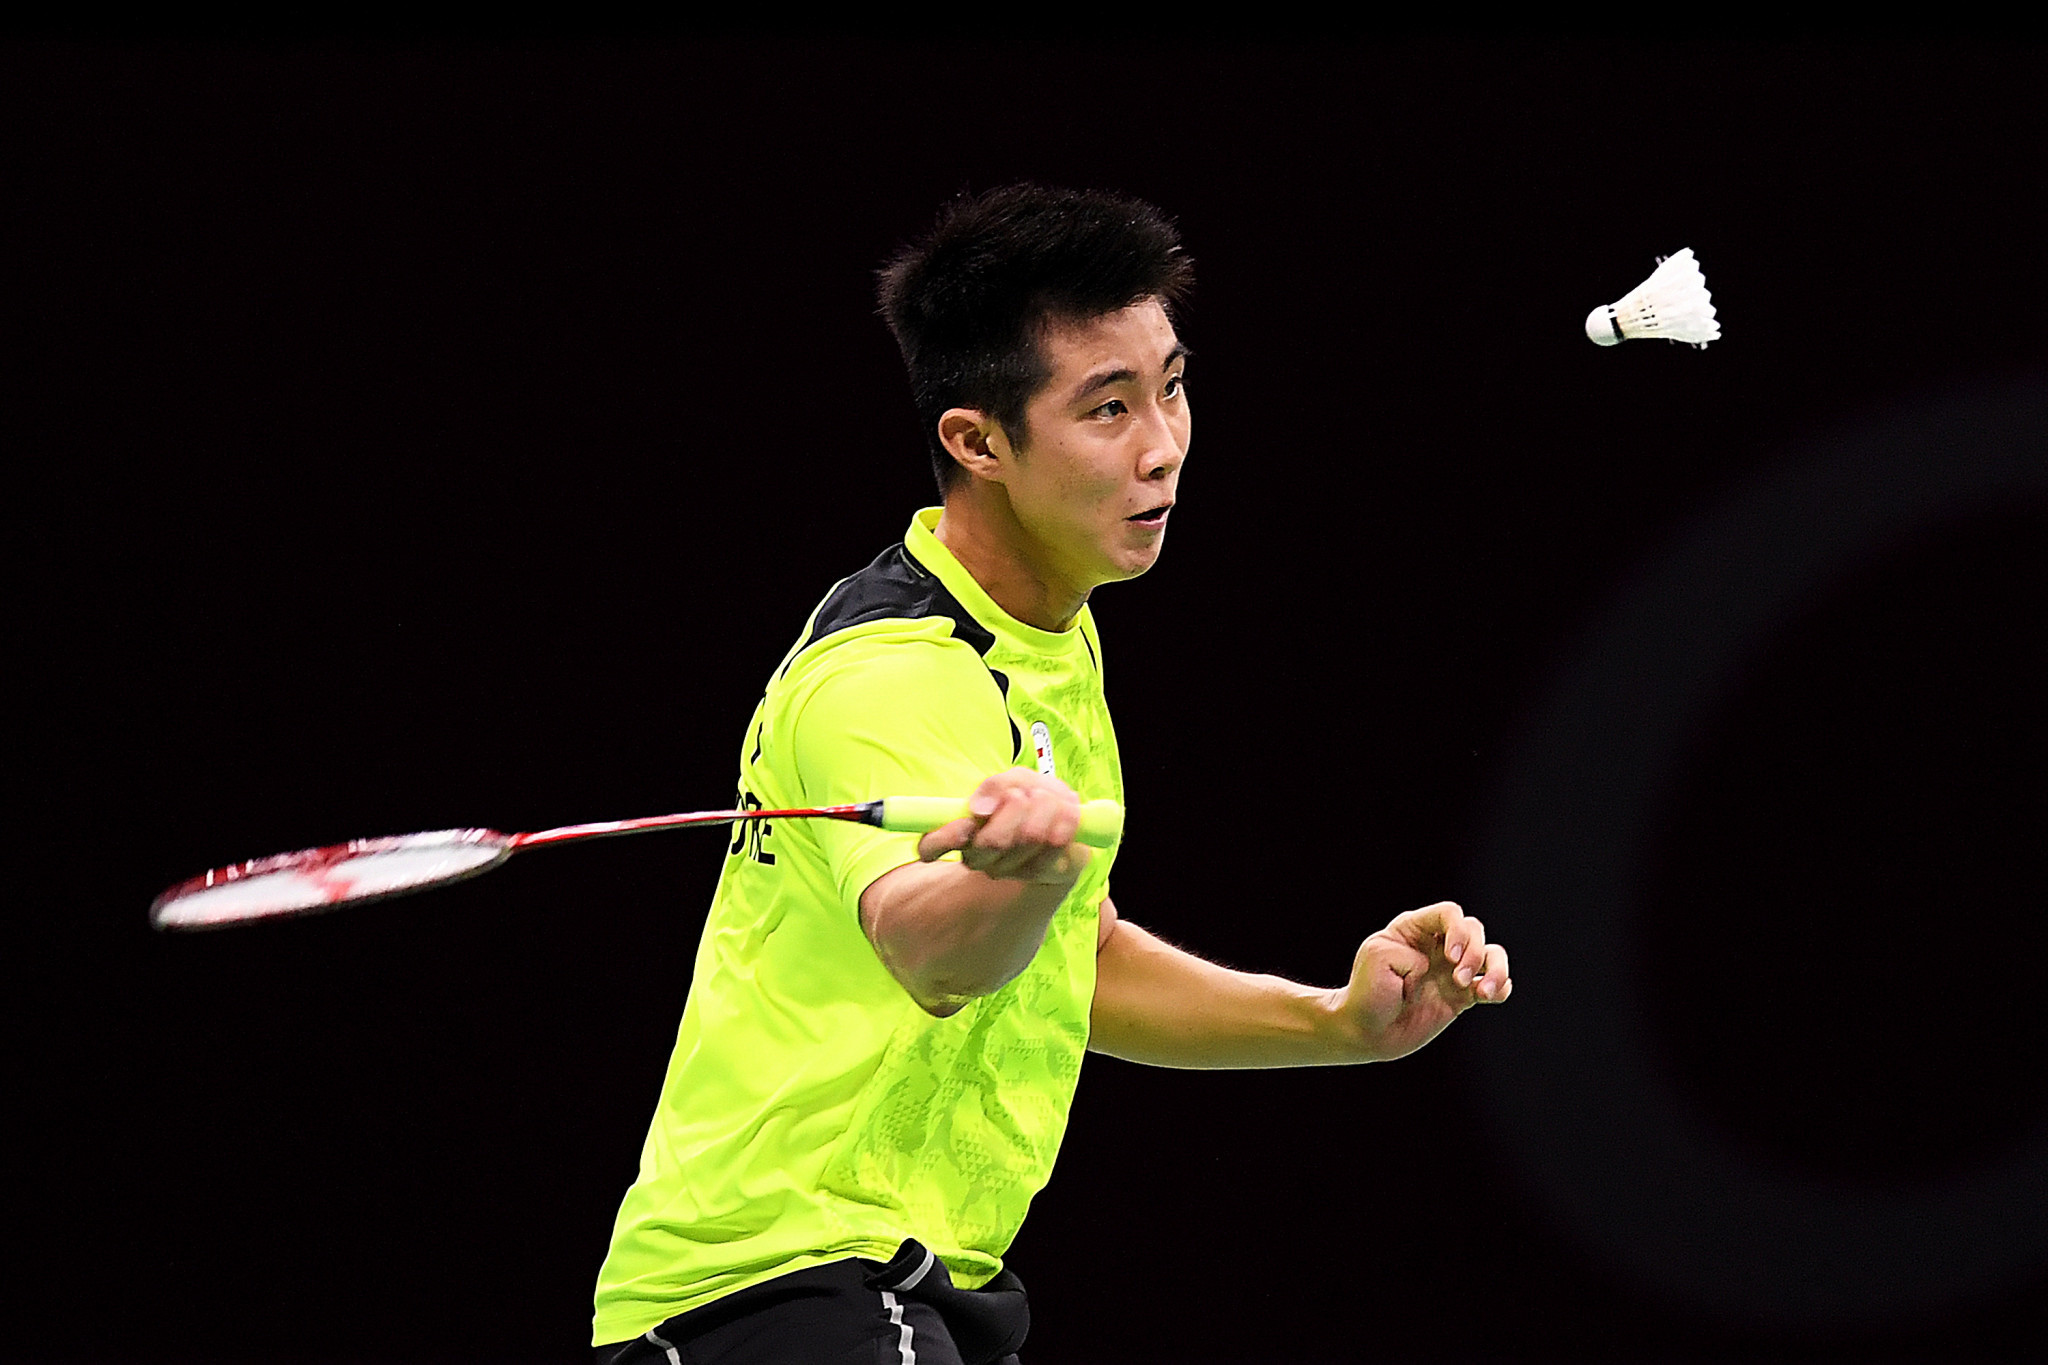 Singapore's Loh Kean Yew is in the men's final of the BWF Russian Open ©Getty Images